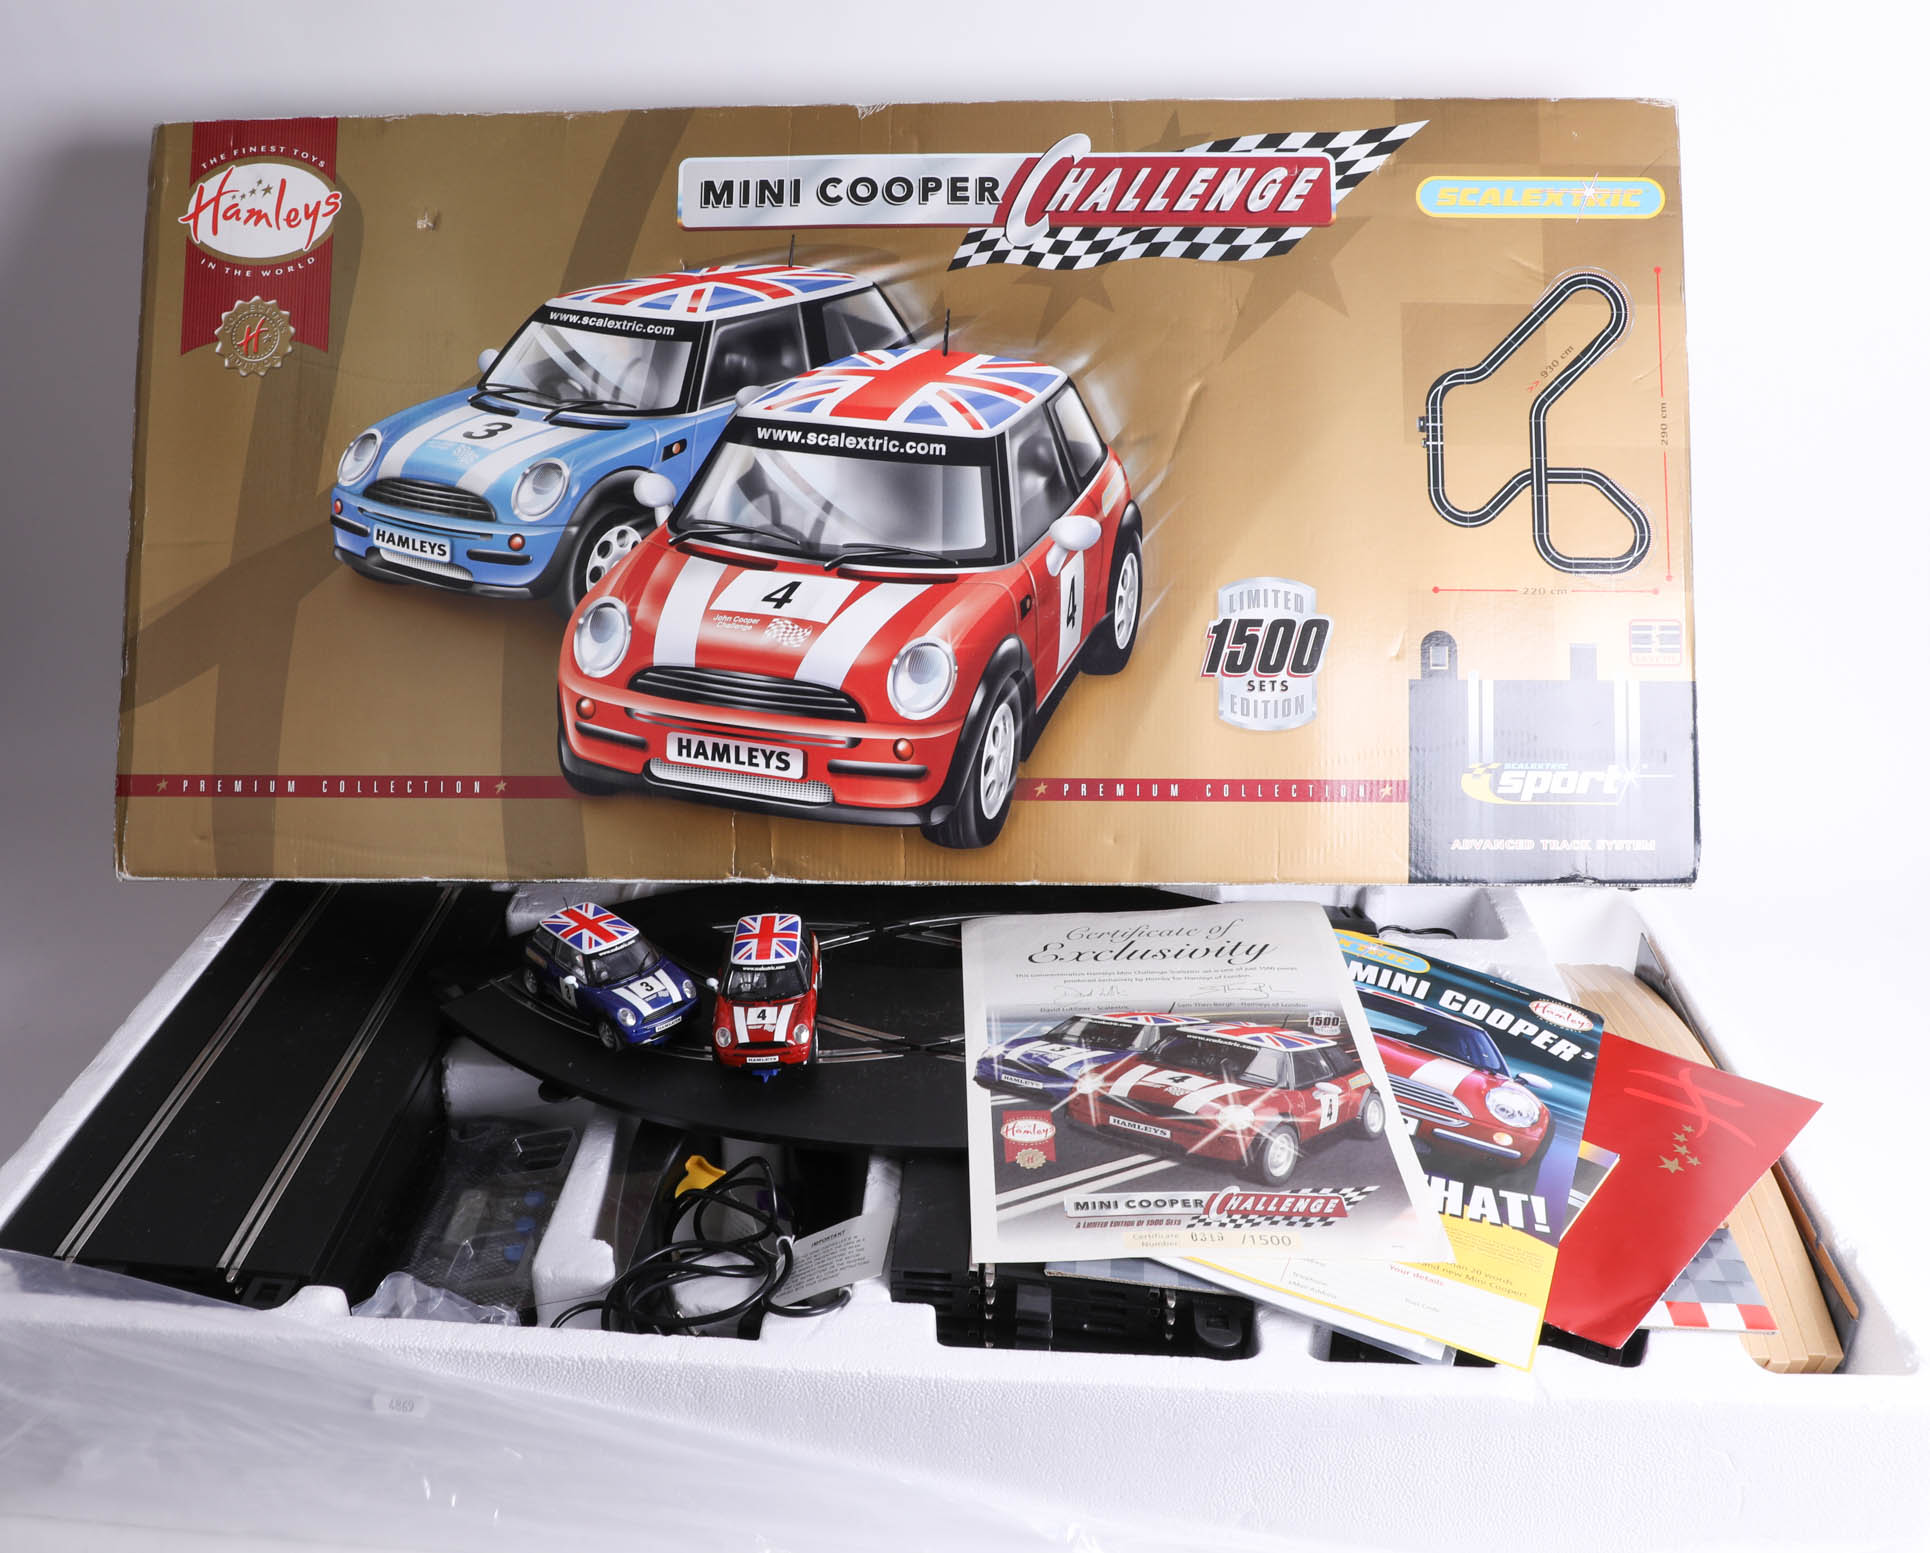 Lot 014 - A Hamley's 'Mini Cooper Challenge' Scalextric set, limited edition 319/1500 with certificate,